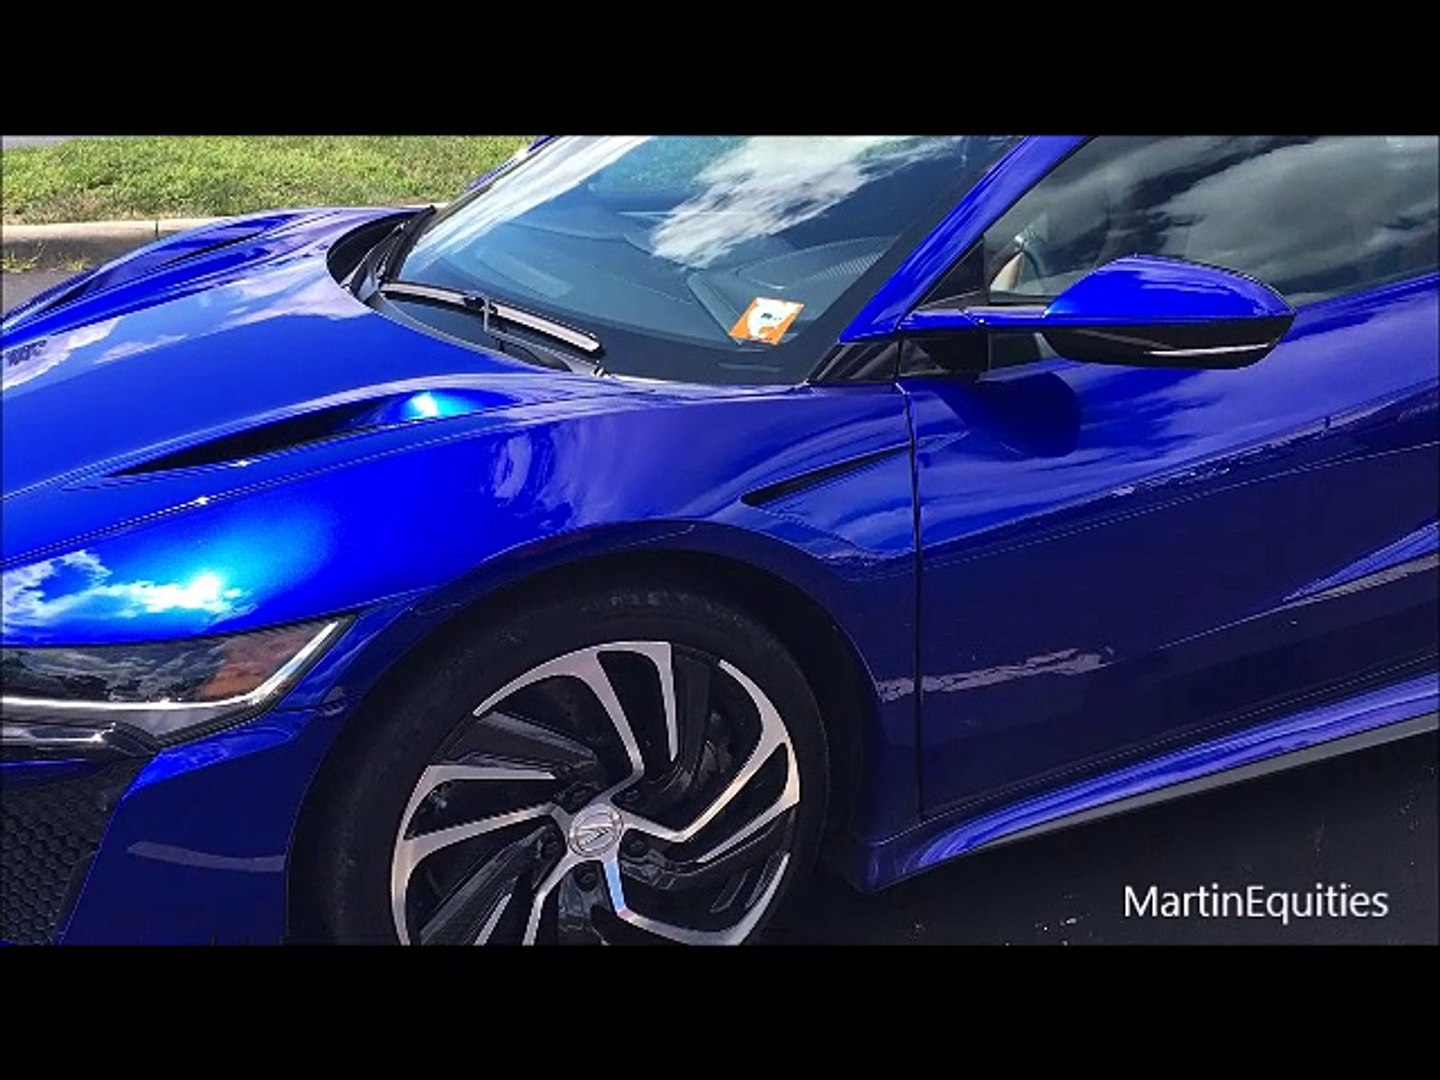 2017 Acura Nsx Test Car In Blue Pearl Video Dailymotion